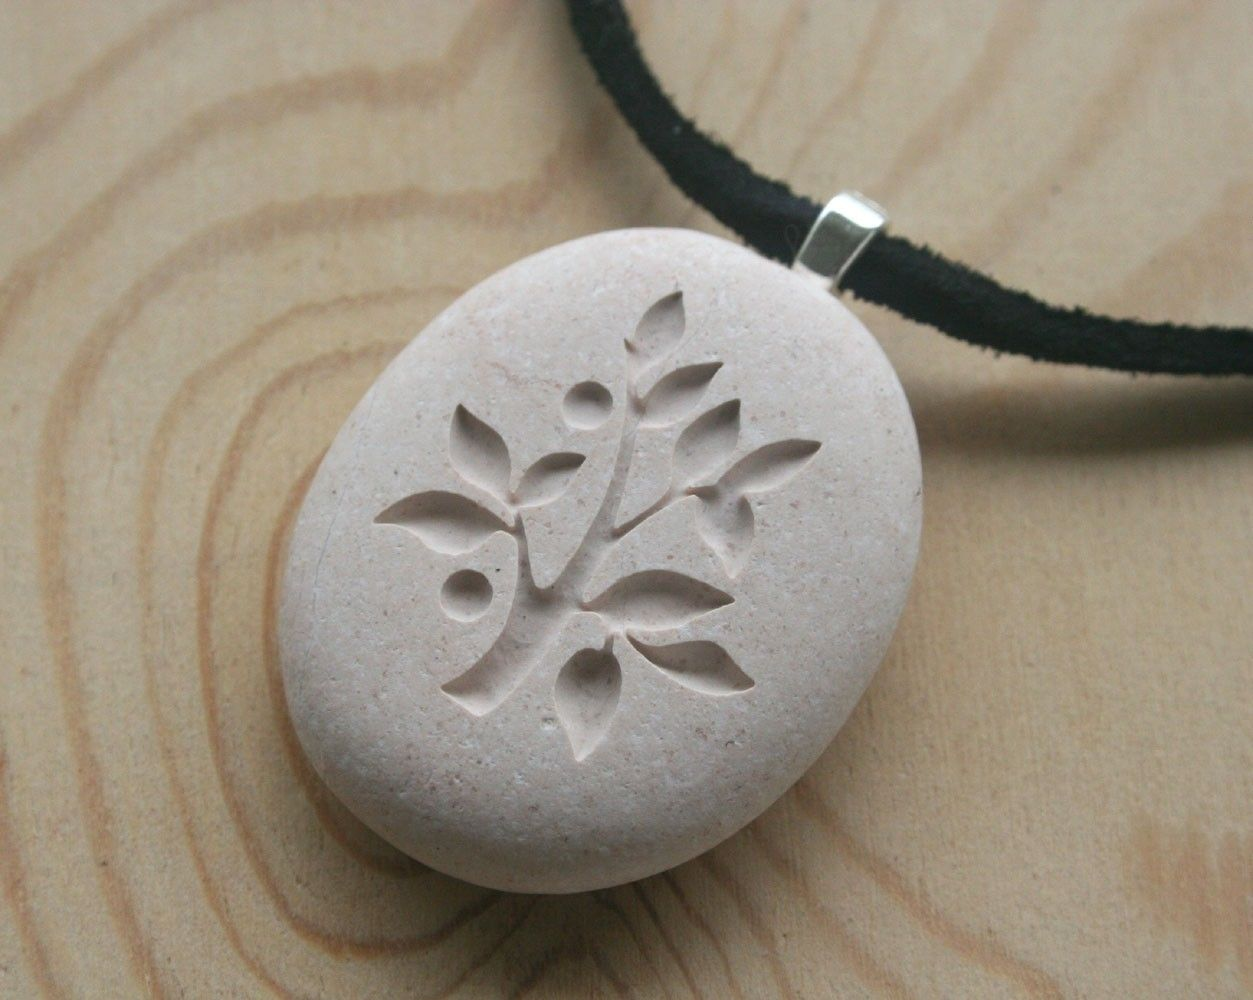 Tree of life tiny pebbleglyph pendant c engraved beach stone piedra tallada con dremel which possibly translates to carving into a stone with a dremel dailygadgetfo Image collections